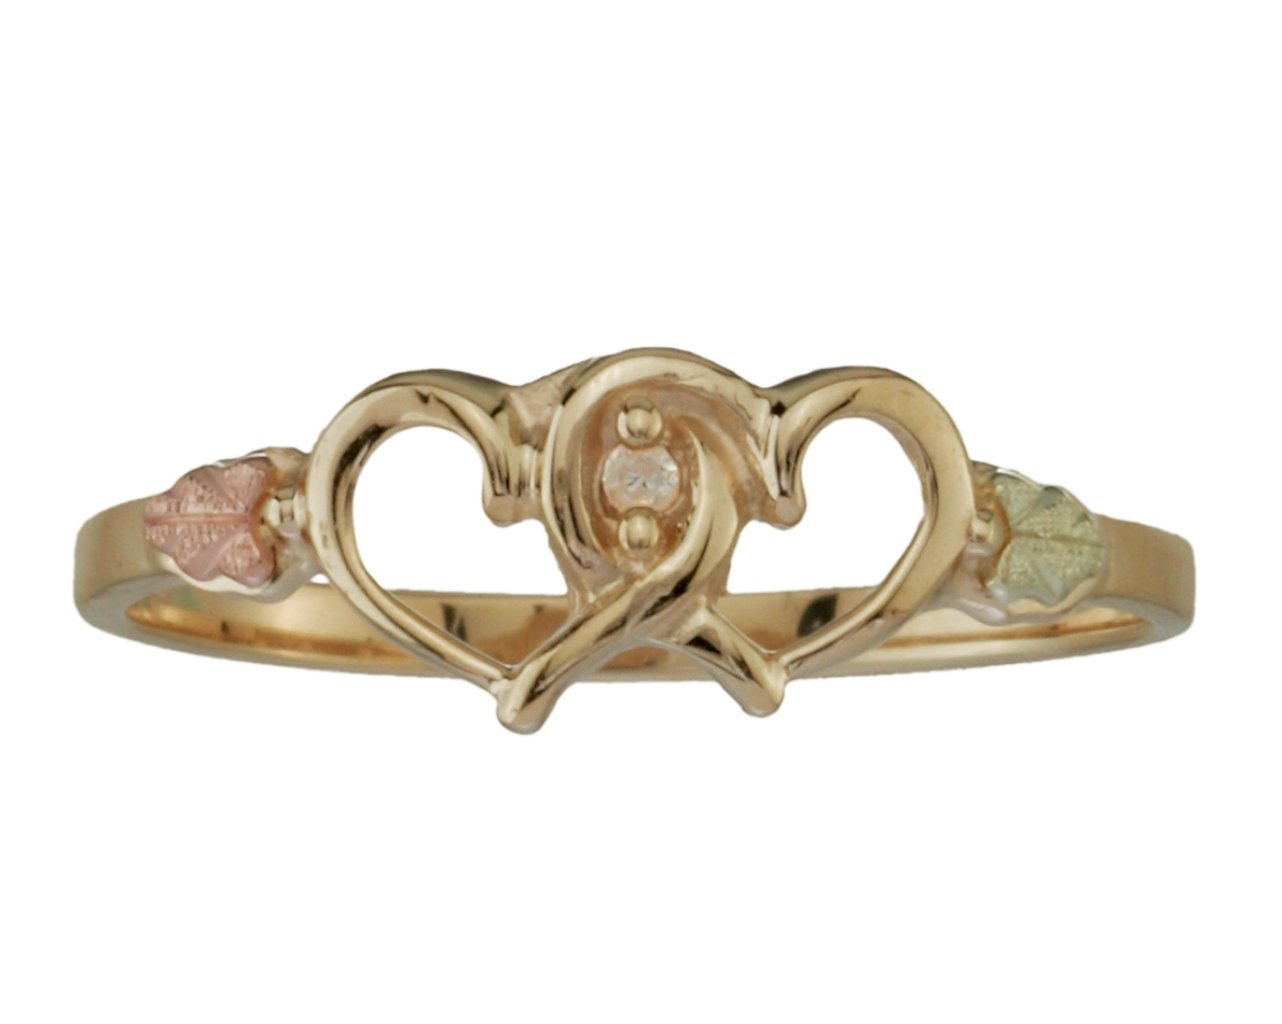 Diamond Two Hearts Petite Ring, 10k Yellow Gold, 12k Green and Rose Gold Black Hills Gold Motif, Size 7 by Black Hills Gold Jewelry